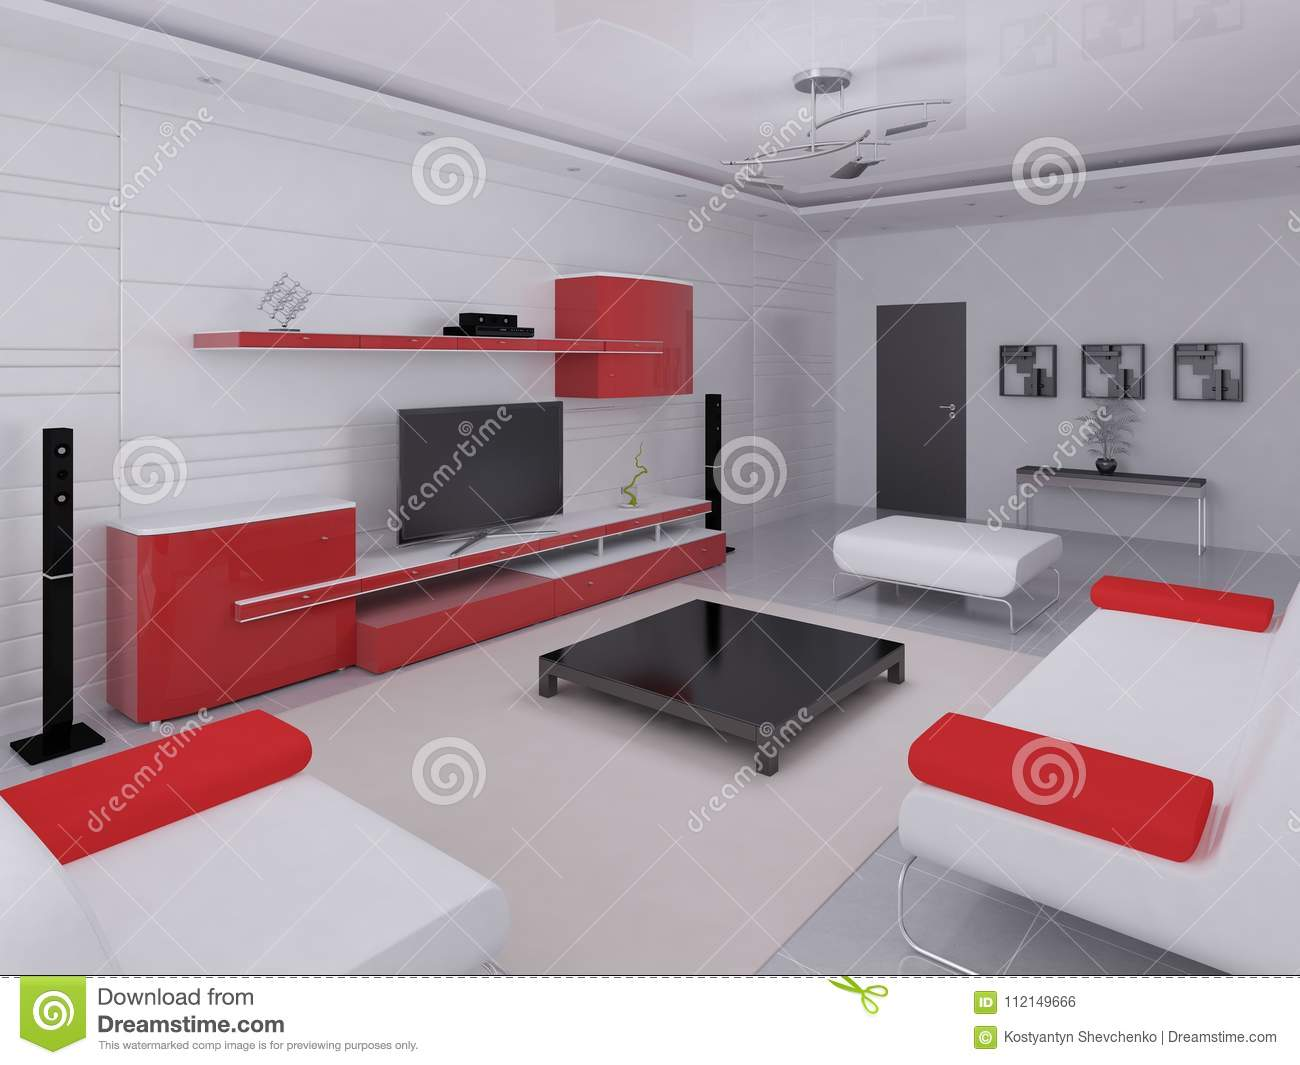 tech furniture. Mock Up A Fashionable Living Room With Hi-tech Furniture. Tech Furniture D